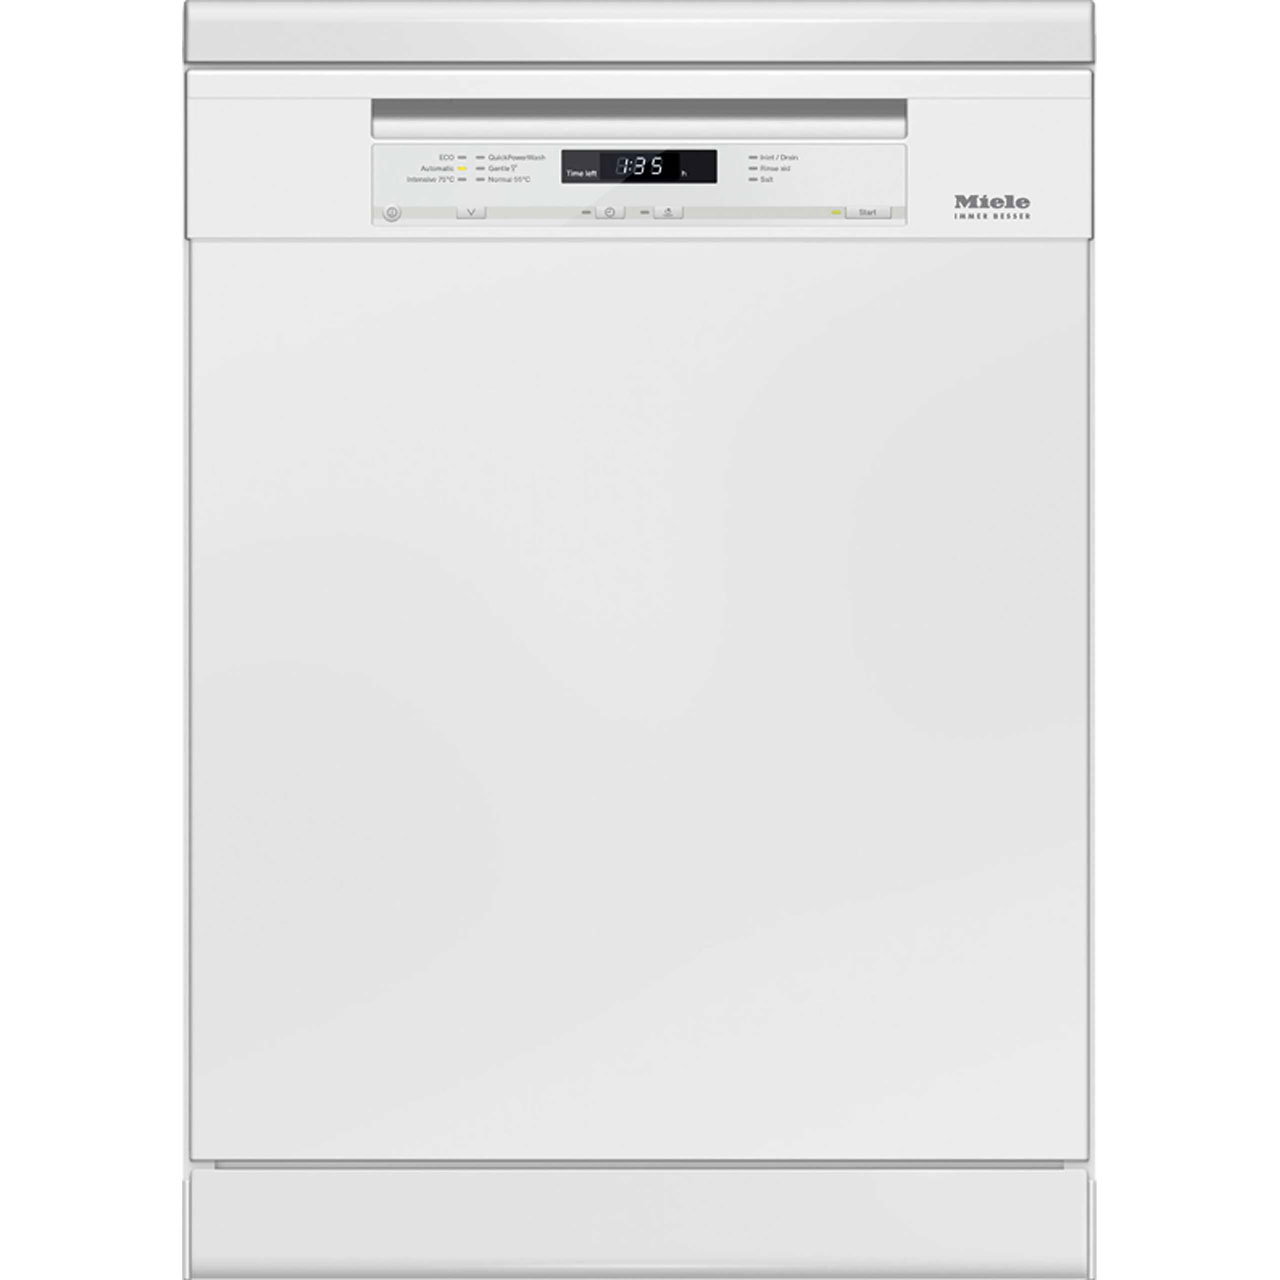 Miele Dishwasher Reviews >> Miele G6620sc Standard Dishwasher White A Rated